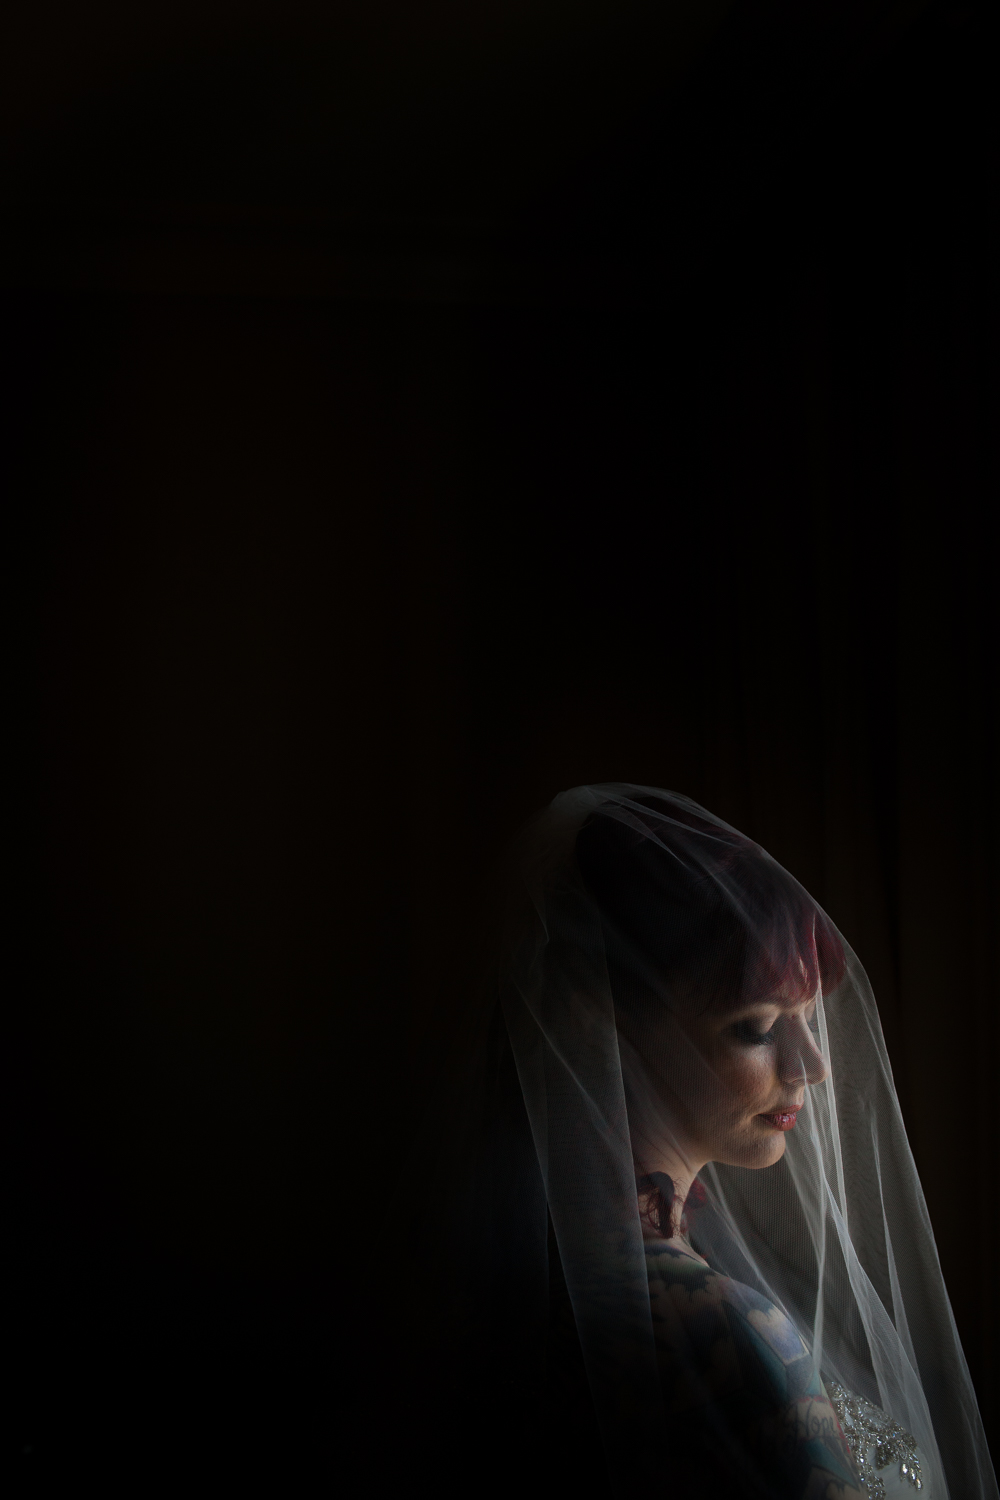 Bride-Portrait-Wedding-Photography-26.jpg